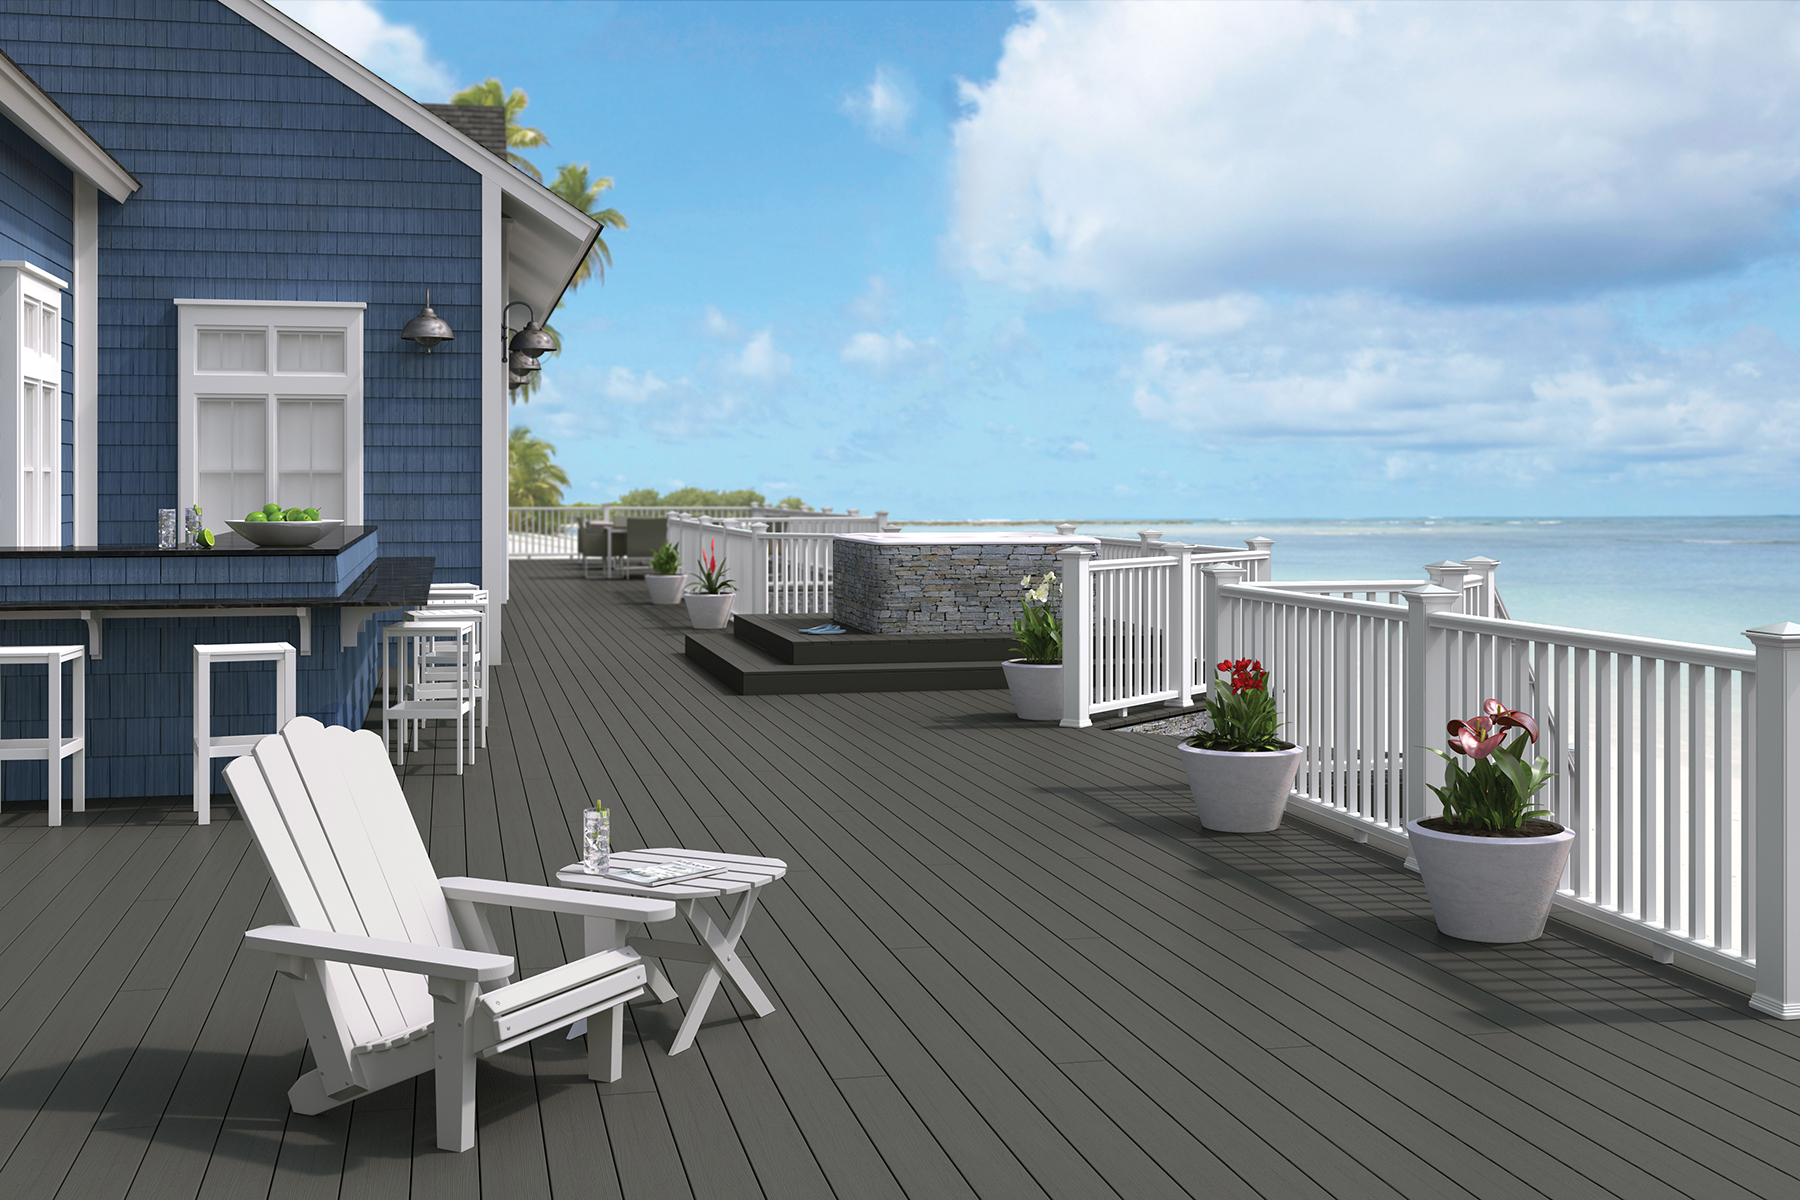 Boise Cascade will become a full-line distributor of Latitudes Decking and Railing and distributor of Deckorators CXT Railing Systems. (Photo: Business Wire)